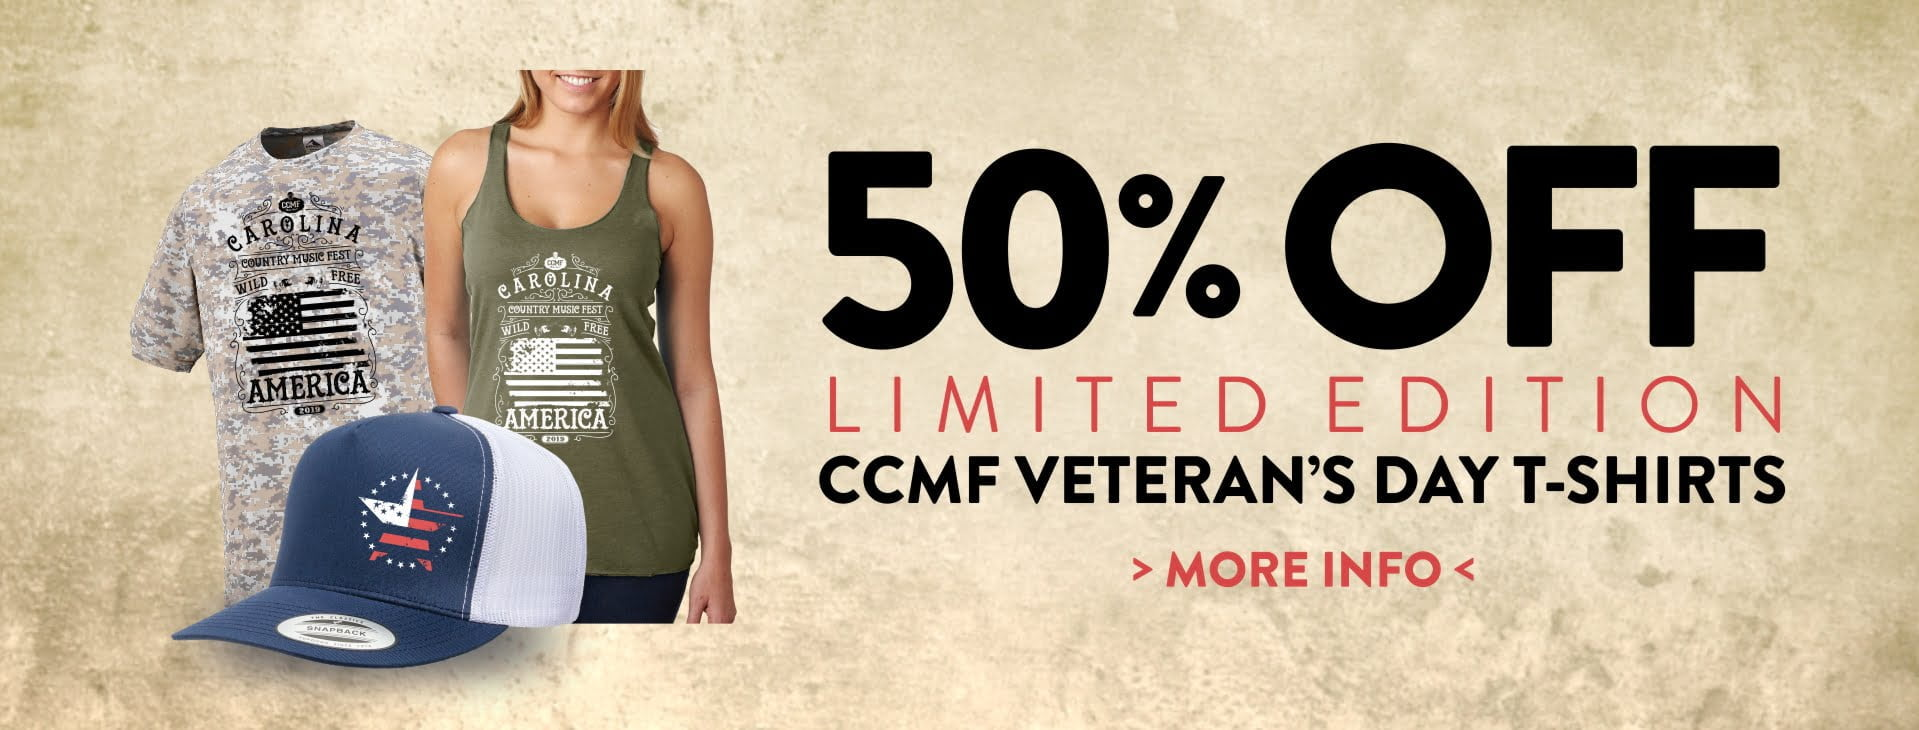 Save on Limited Edition Veteran's Day CCMF Gear